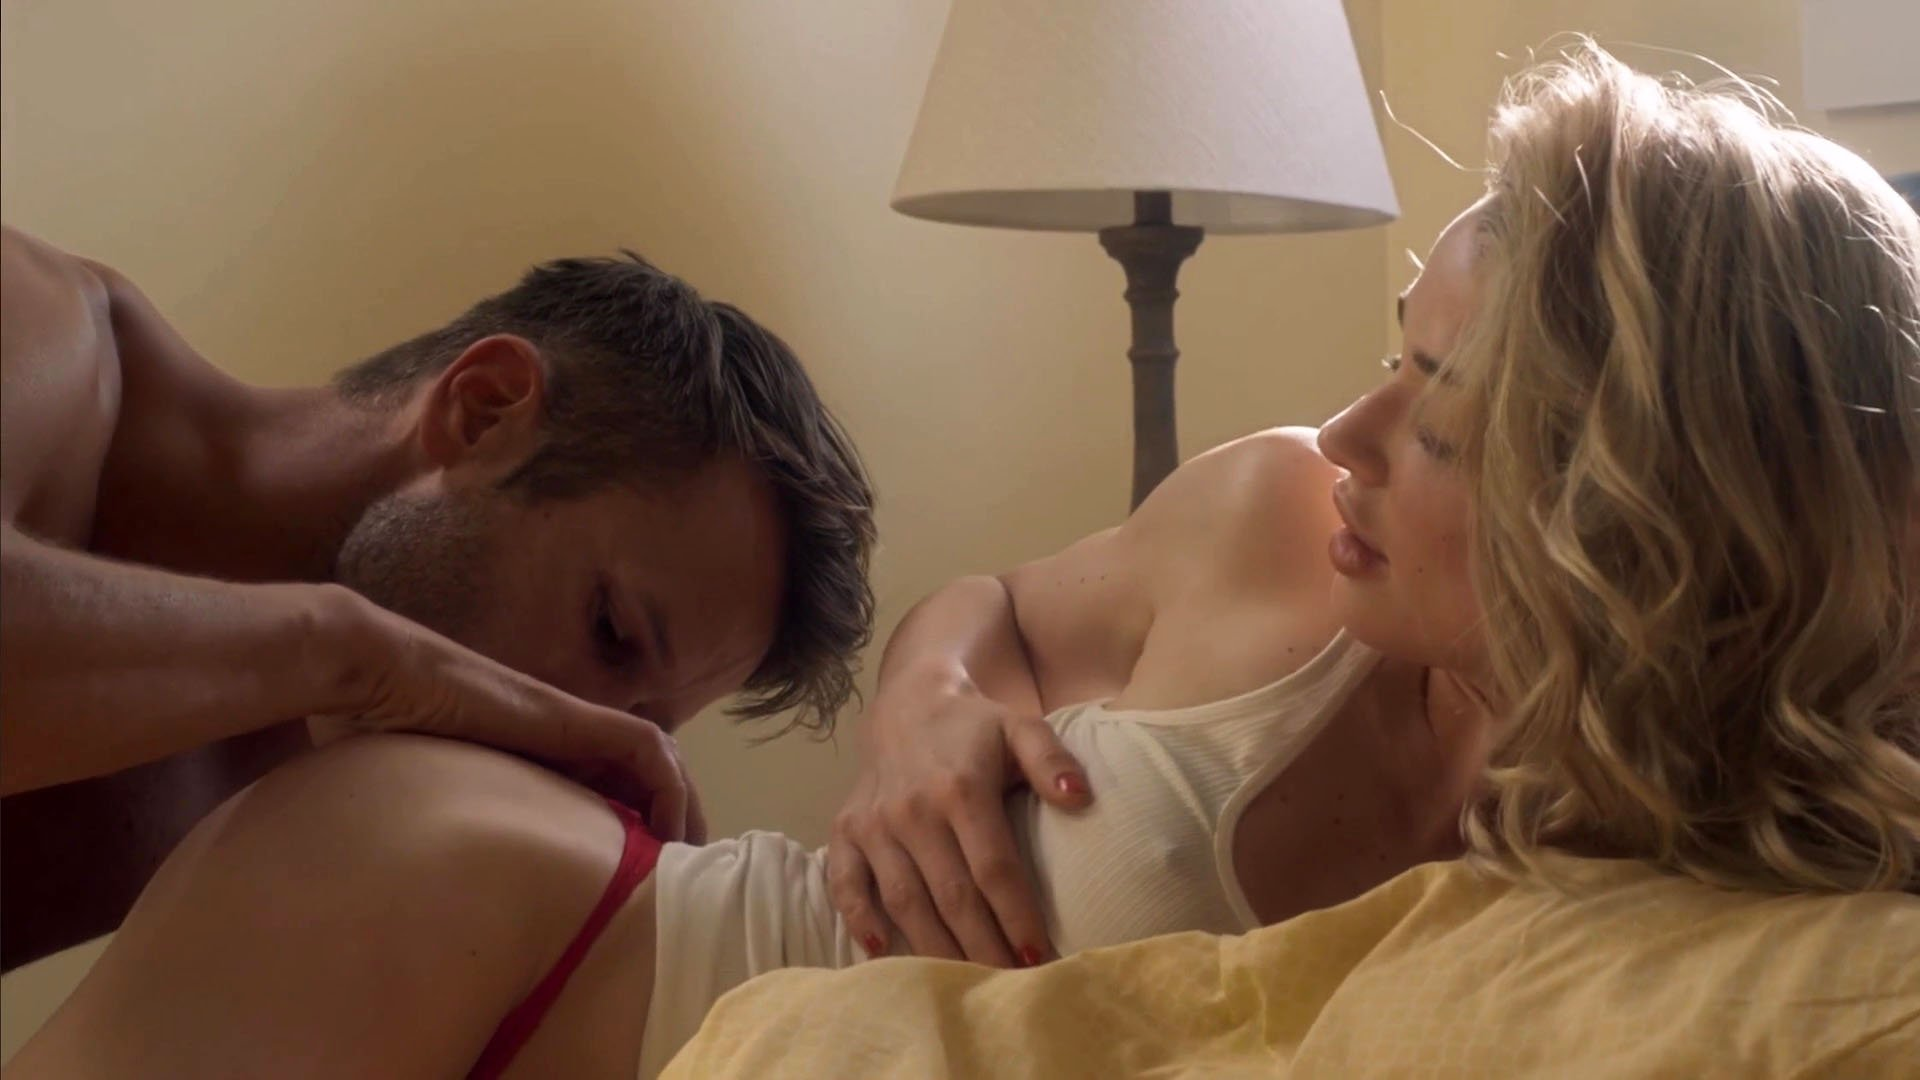 Nude Video Celebs  Emma Rigby Nude - Hollywood Dirt 2017-7753